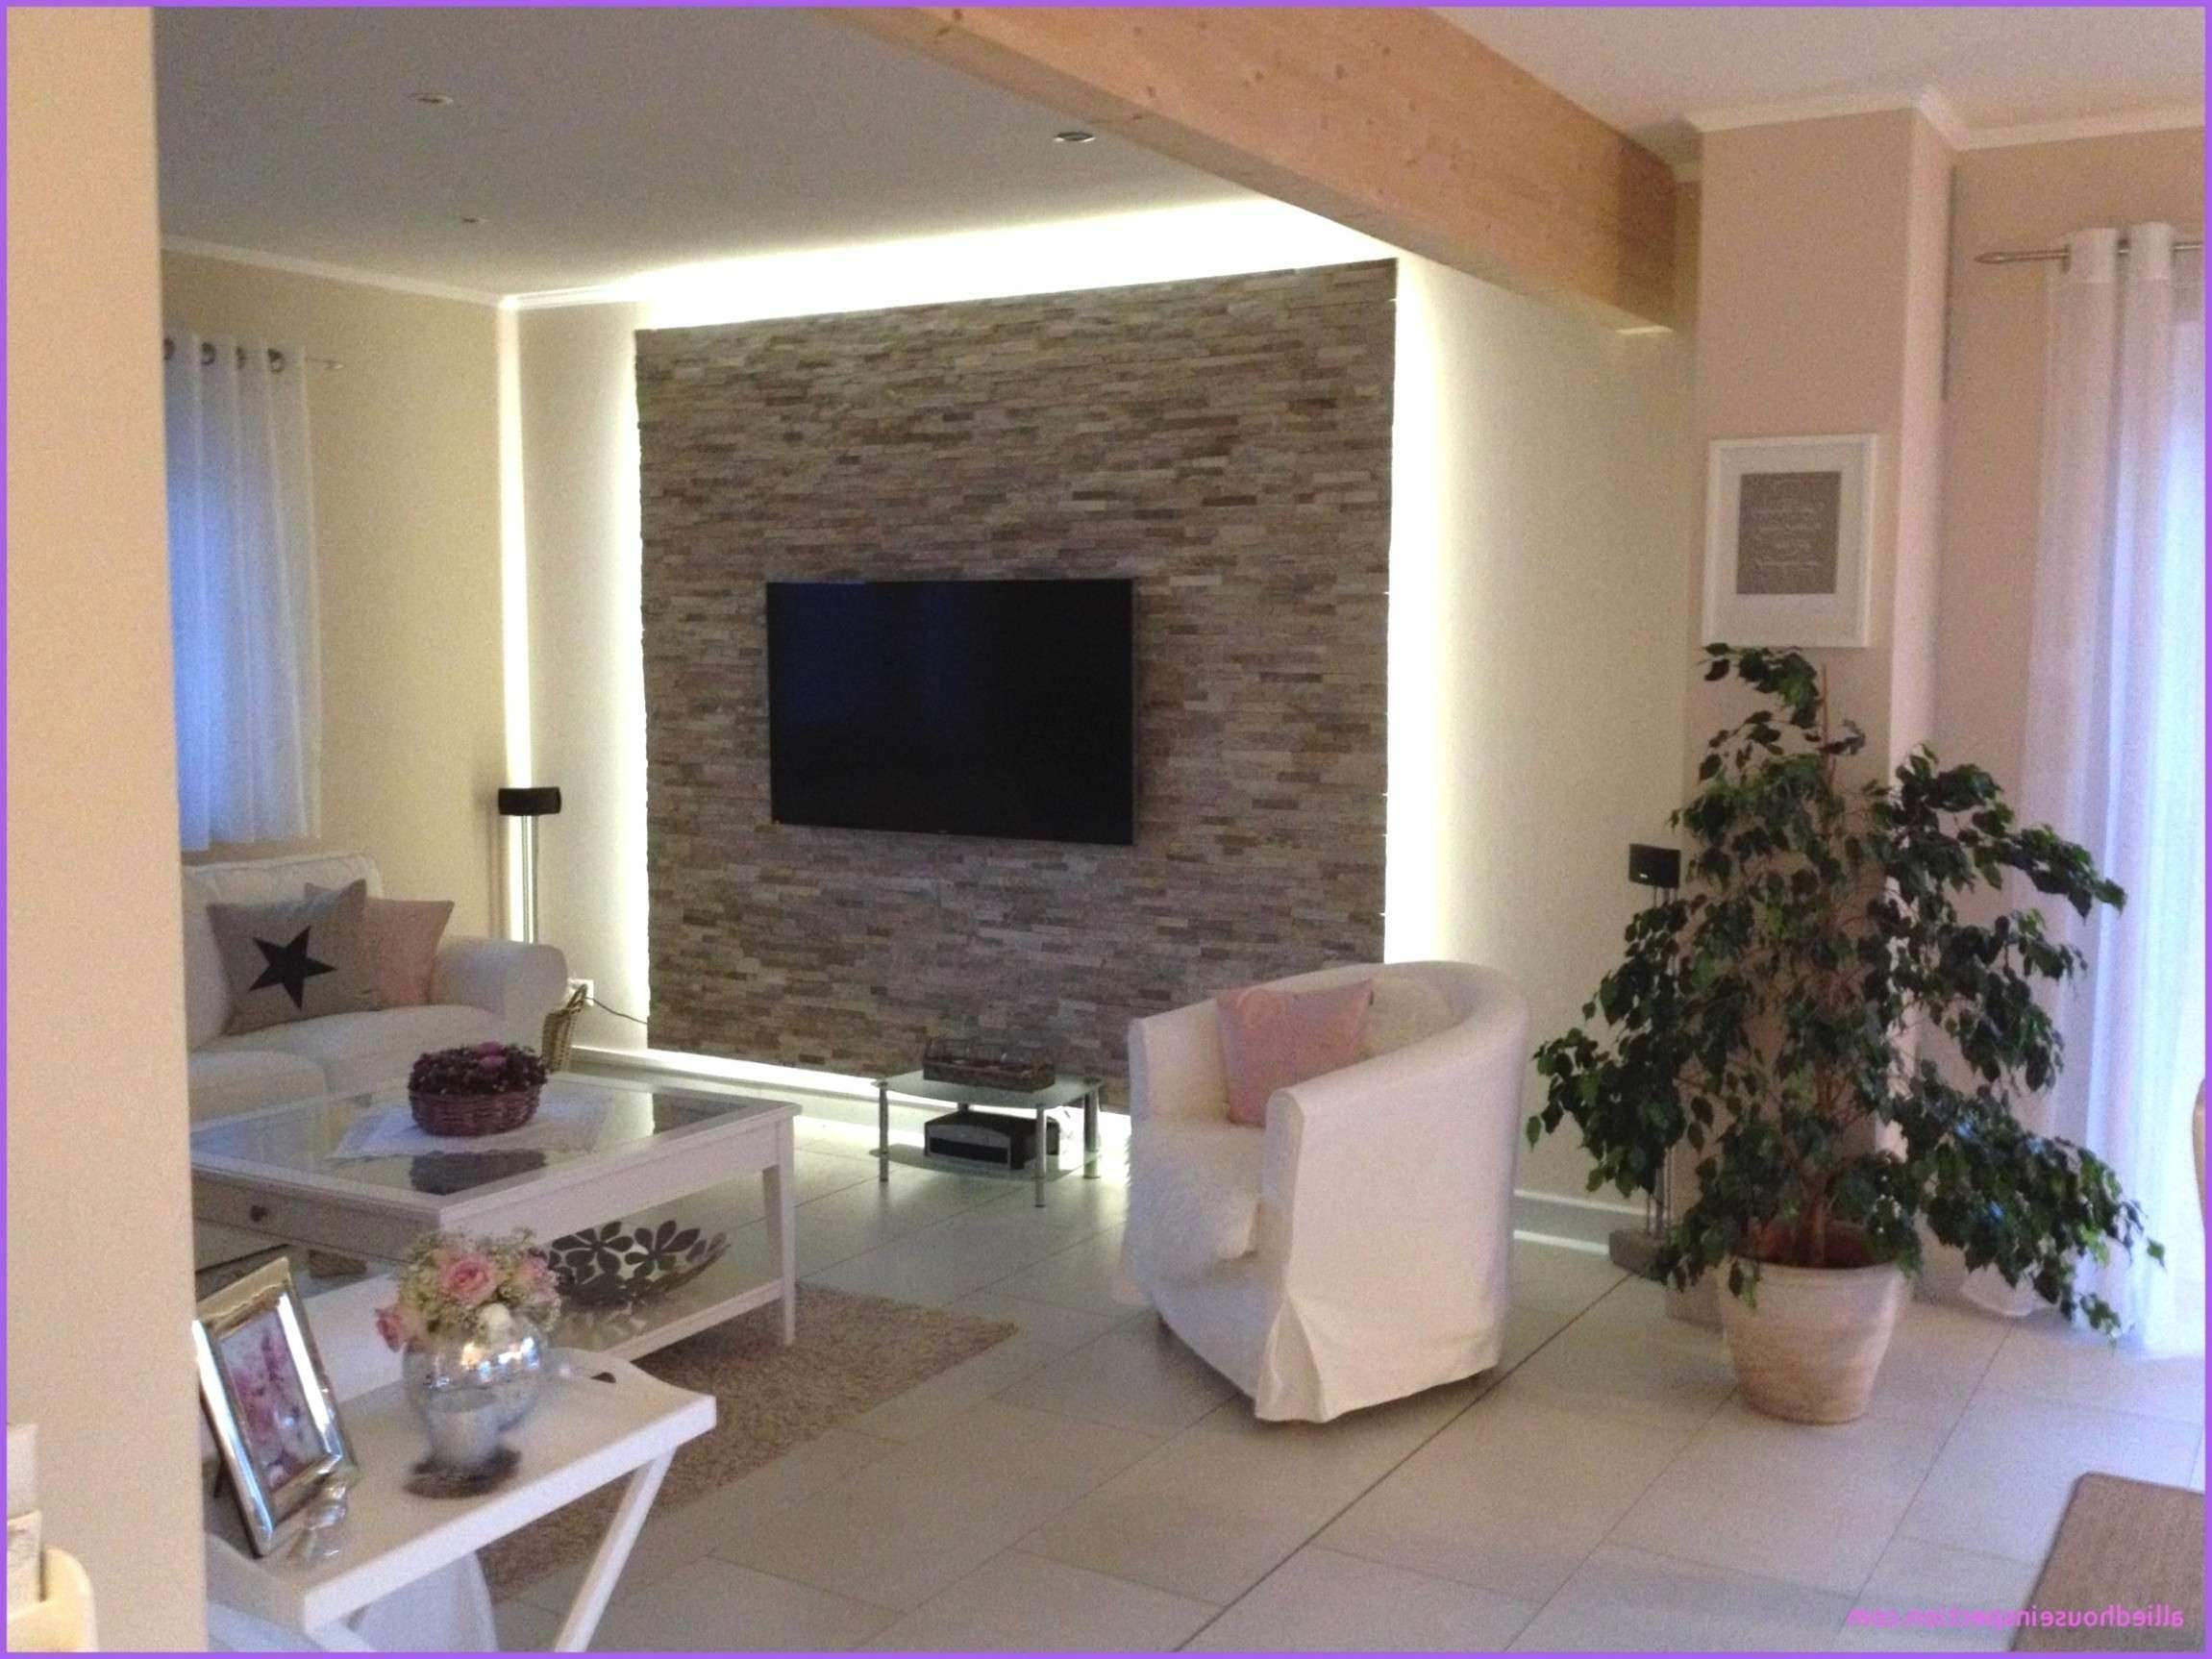 Full Size of Wohnzimmer Beleuchtung Led Leiste Led Beleuchtung Wohnzimmer Indirekt Led Beleuchtung Für Wohnzimmer Led Beleuchtung Wohnzimmer Decke Wohnzimmer Led Beleuchtung Wohnzimmer